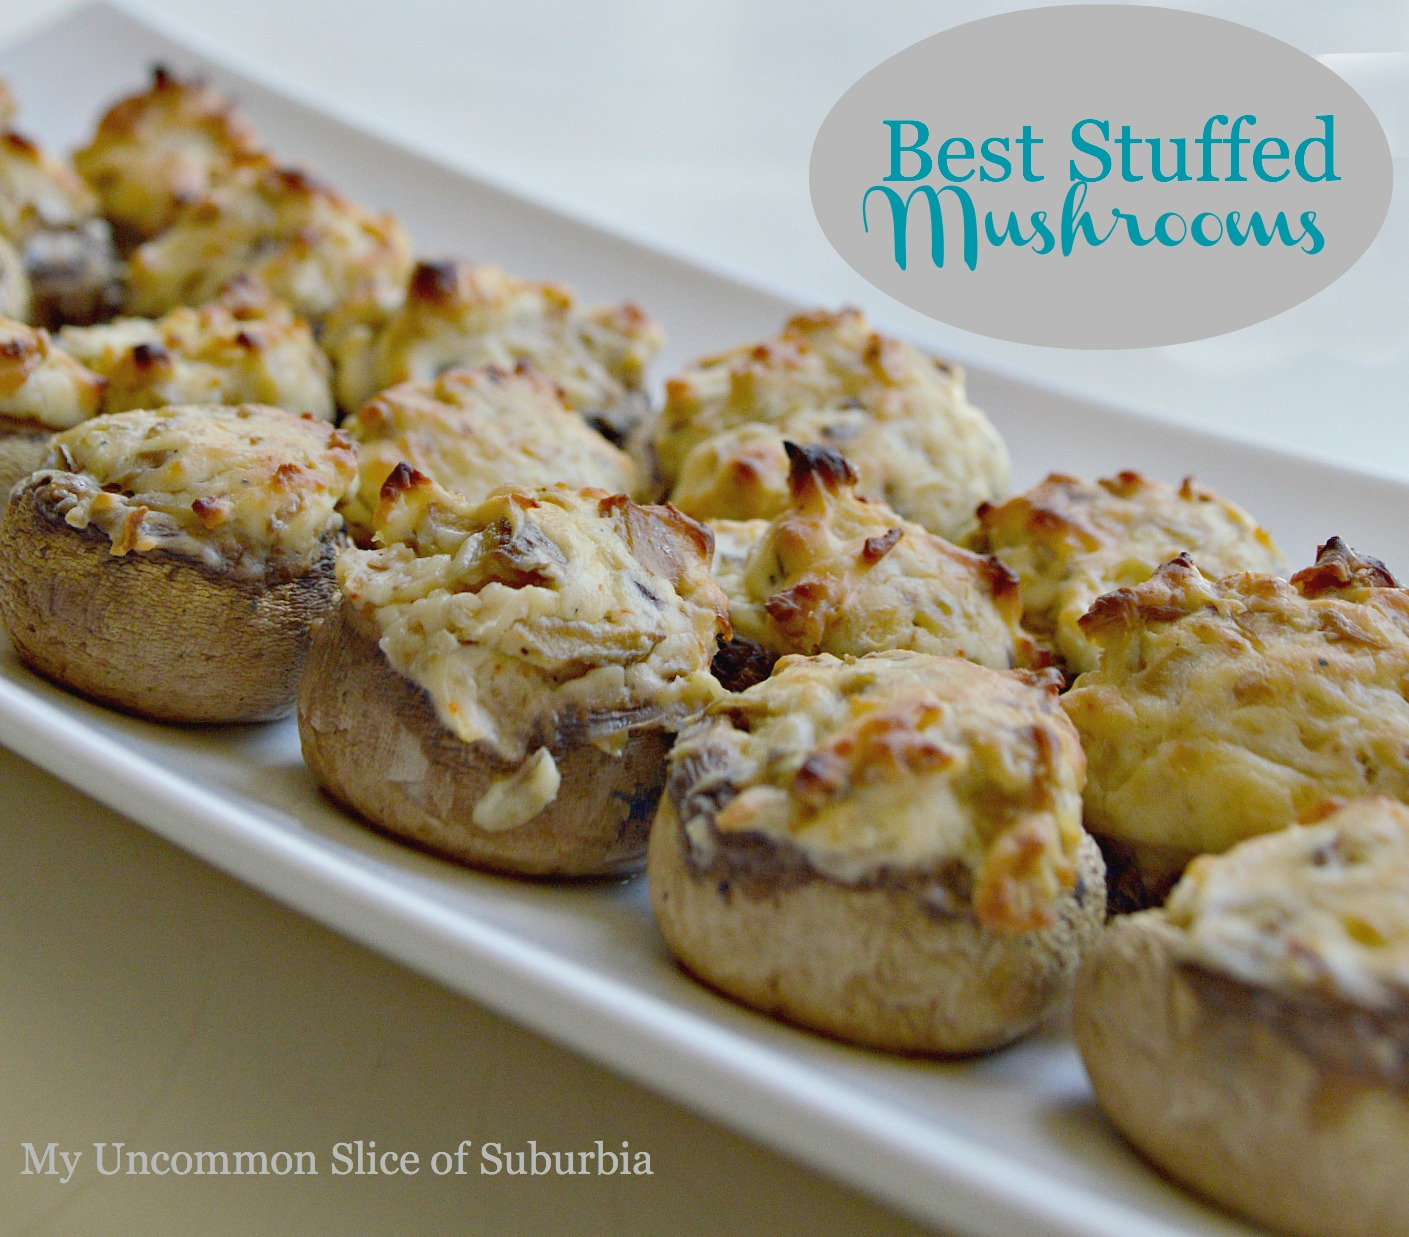 Stuffed Mushroom Recipe - My Uncommon Slice of Suburbia